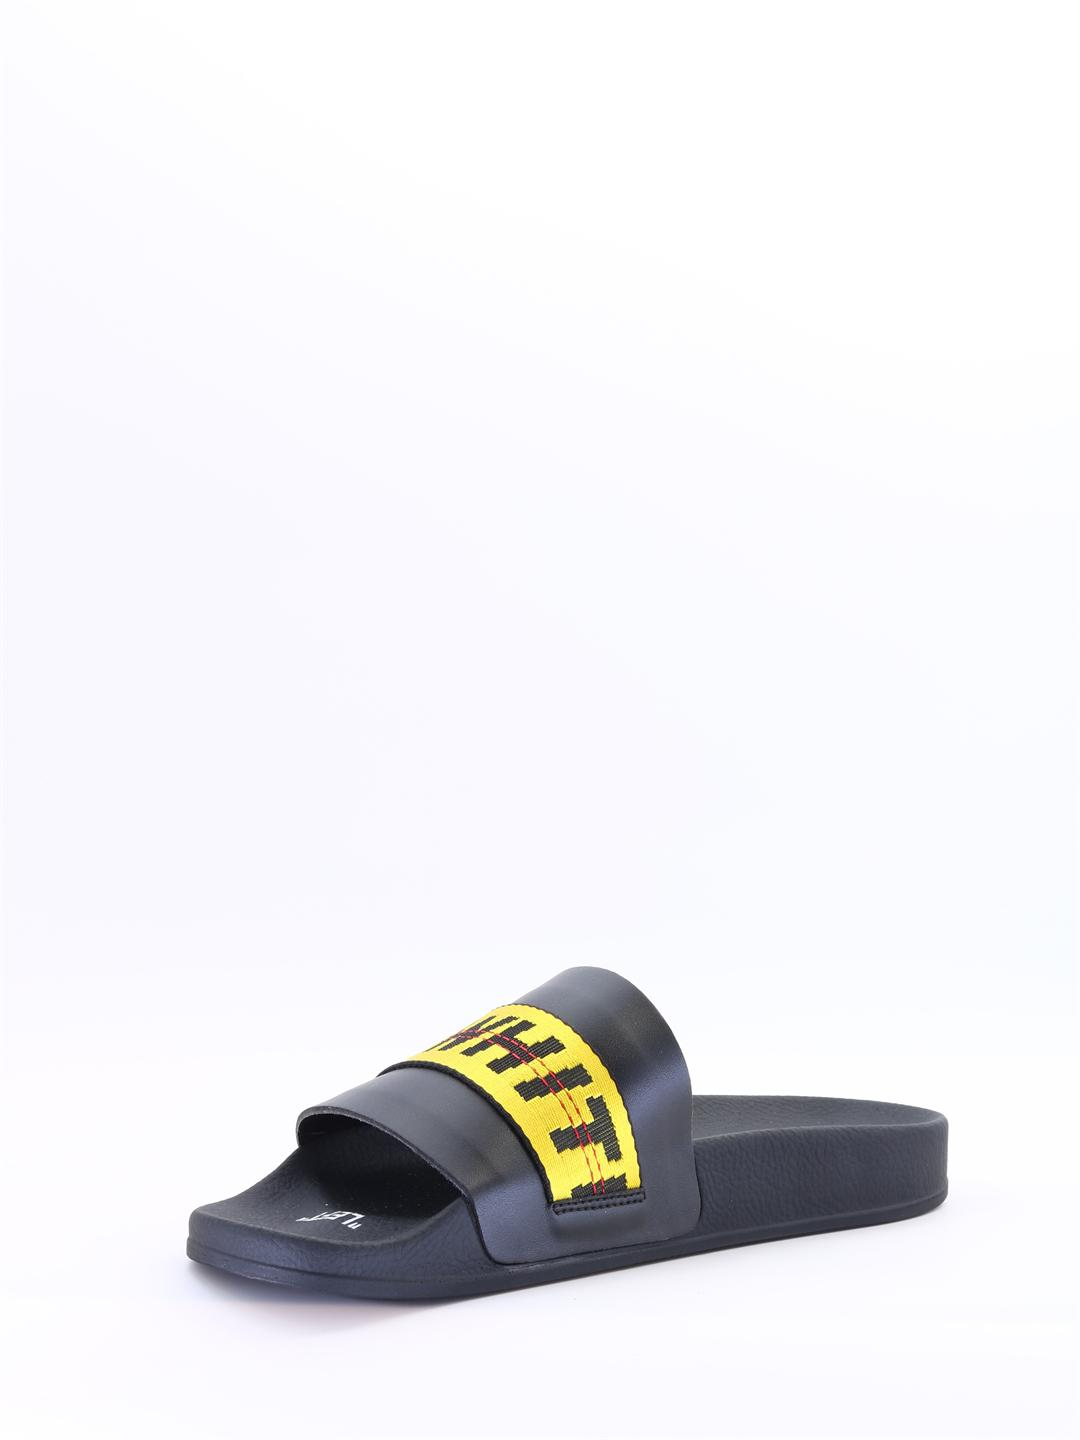 360d7b4e9124 Off-White C O Virgil Abloh Black And Yellow Industrial Strap Slides in Black  for Men - Save 38.12316715542522% - Lyst